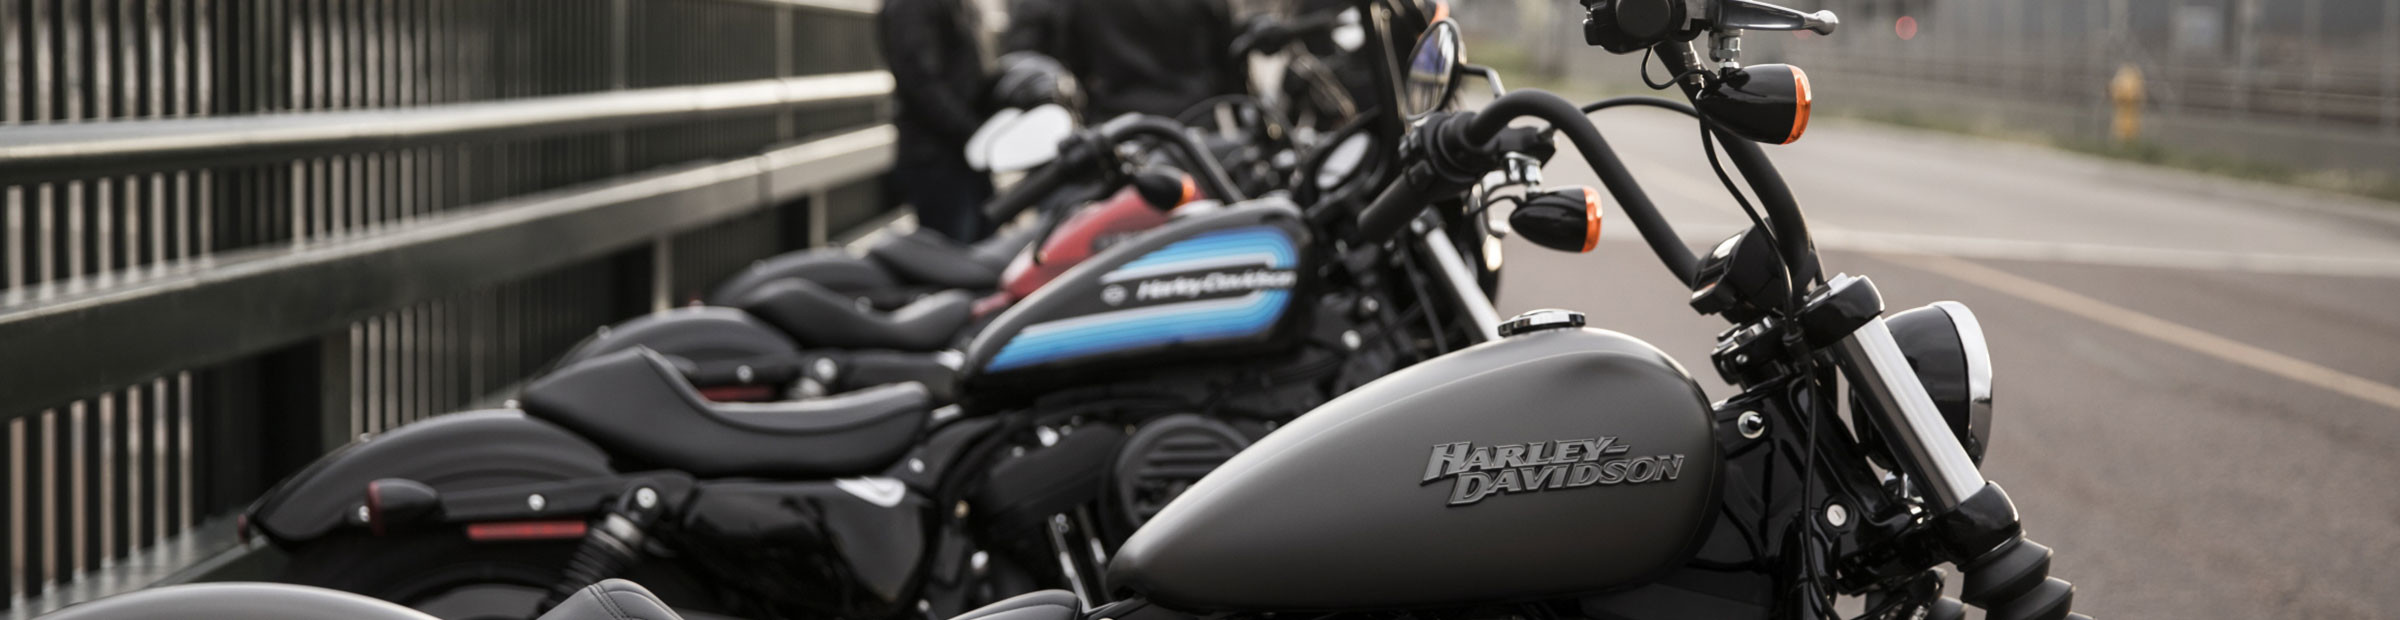 Trade-In Your Ride at Harley-Davidson® of Panama City Beach!